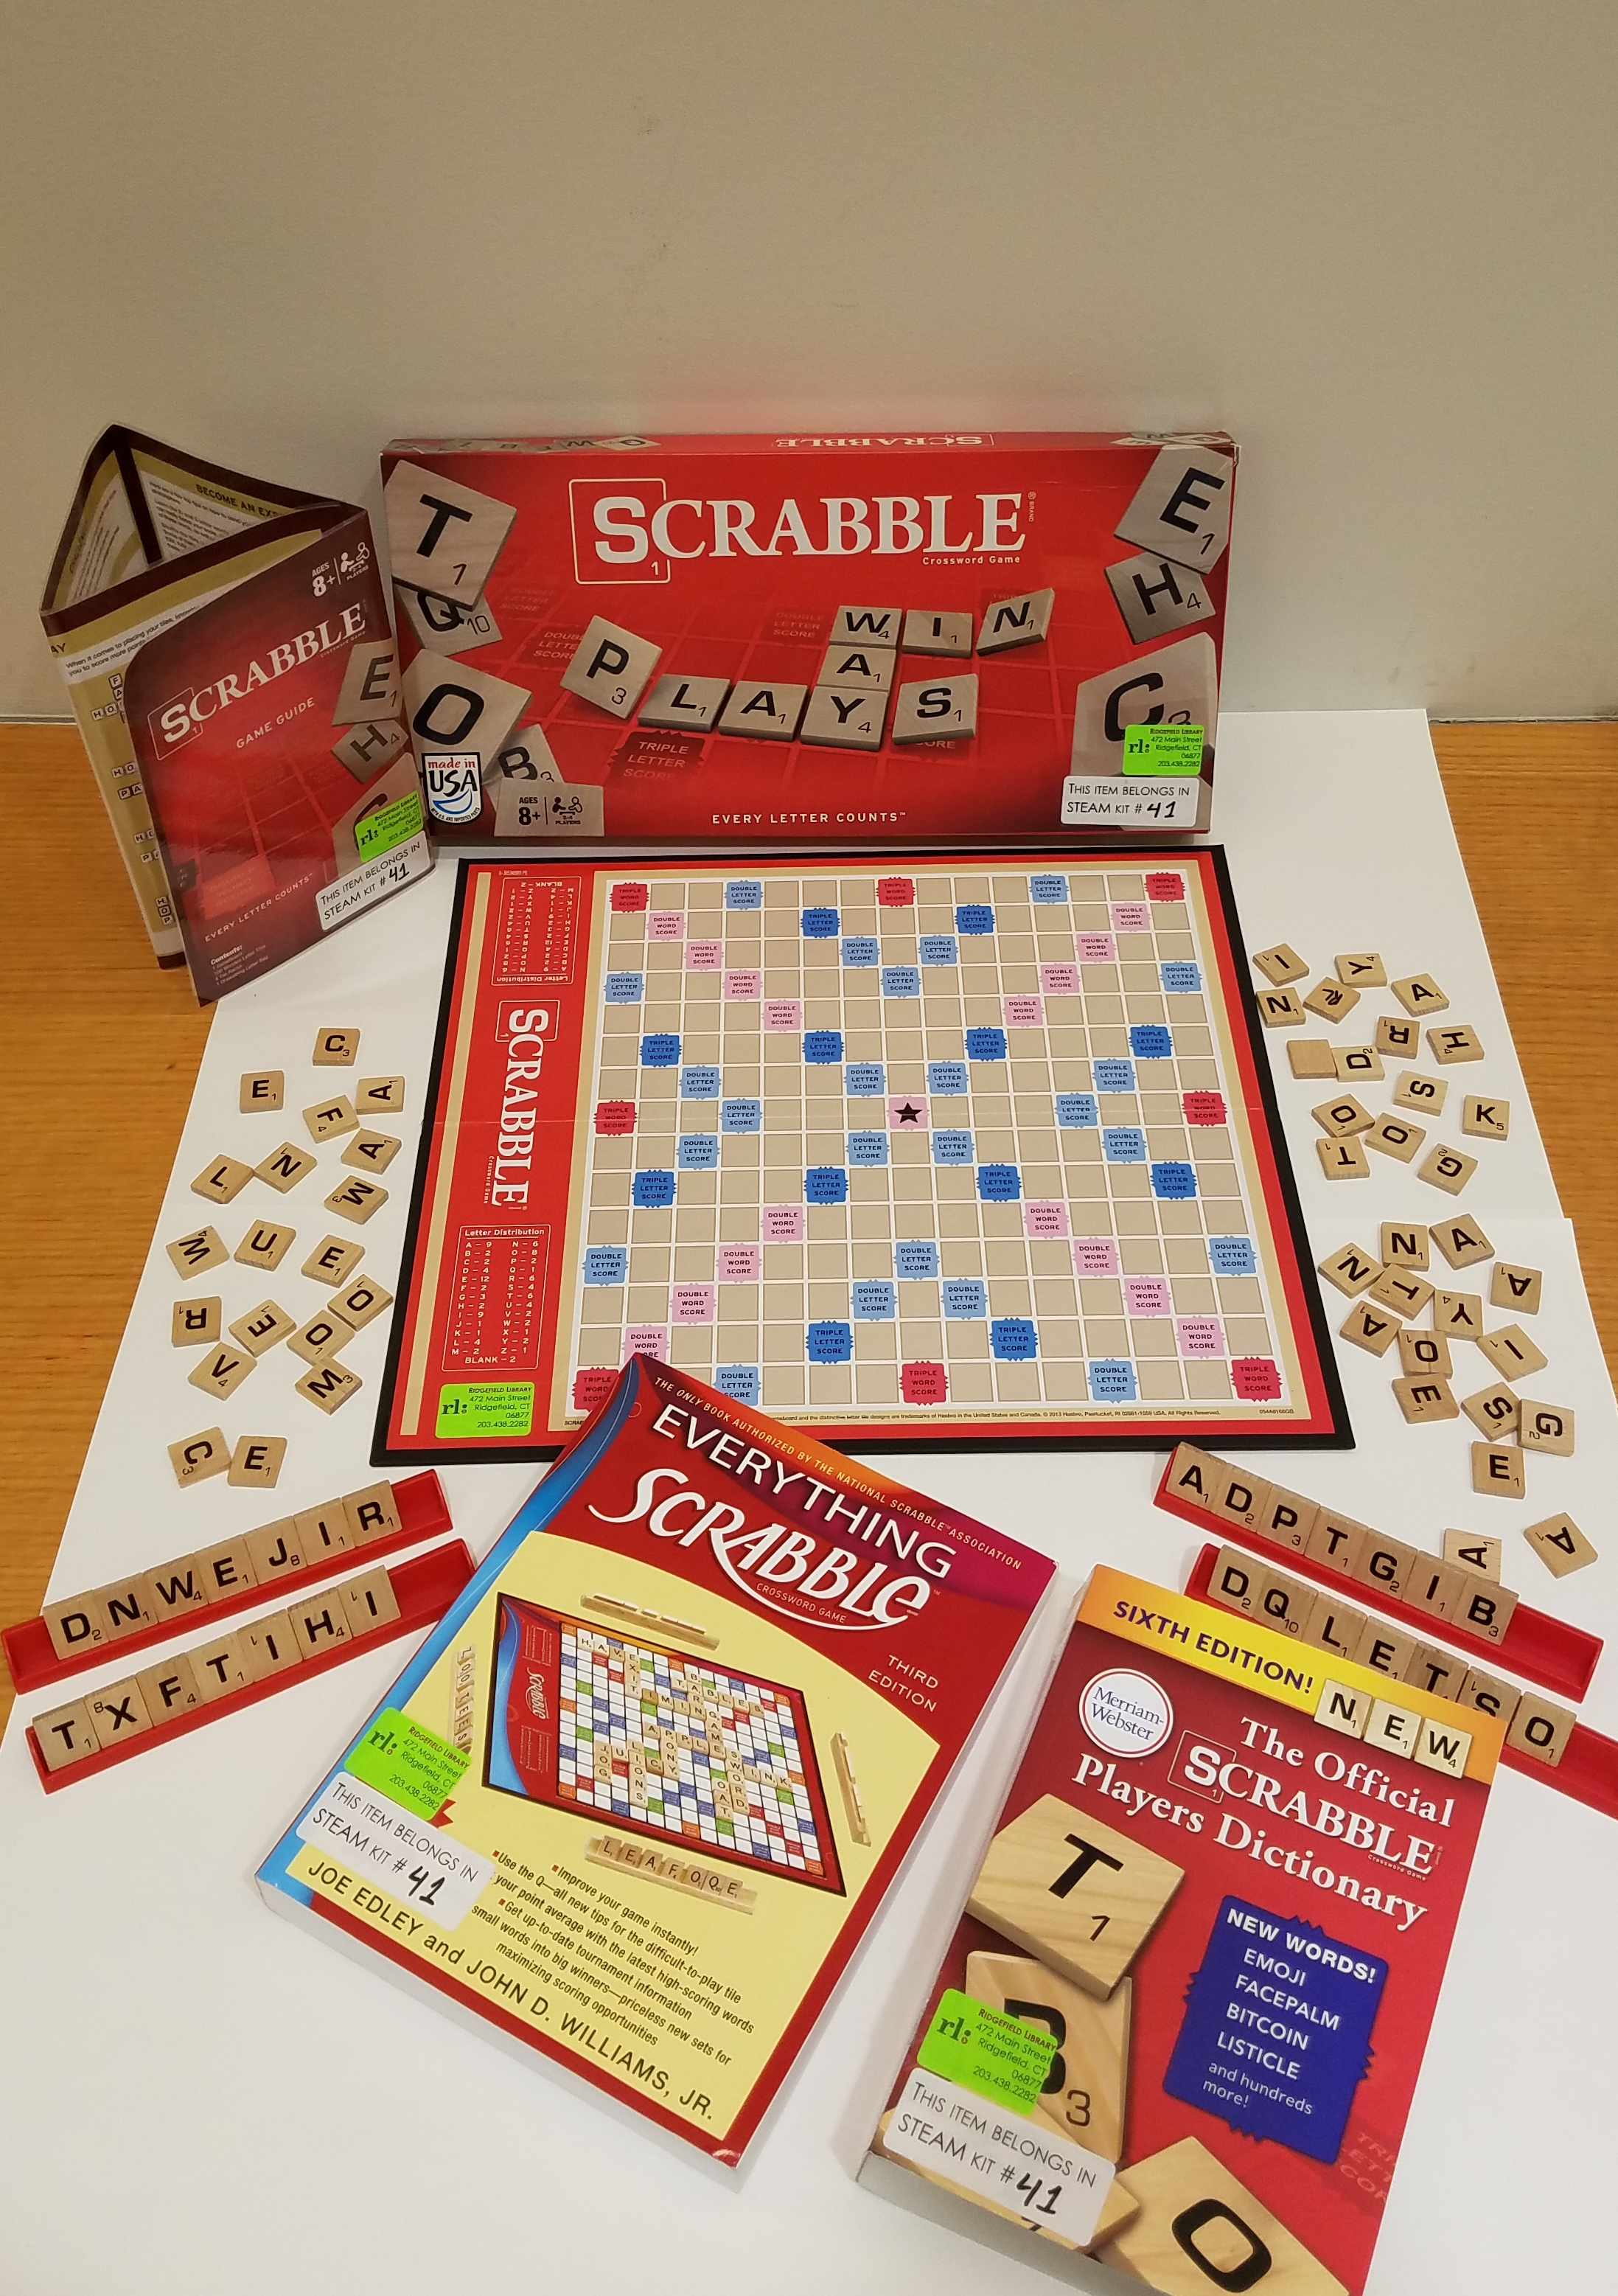 Scrabble game and books for playing scrabble